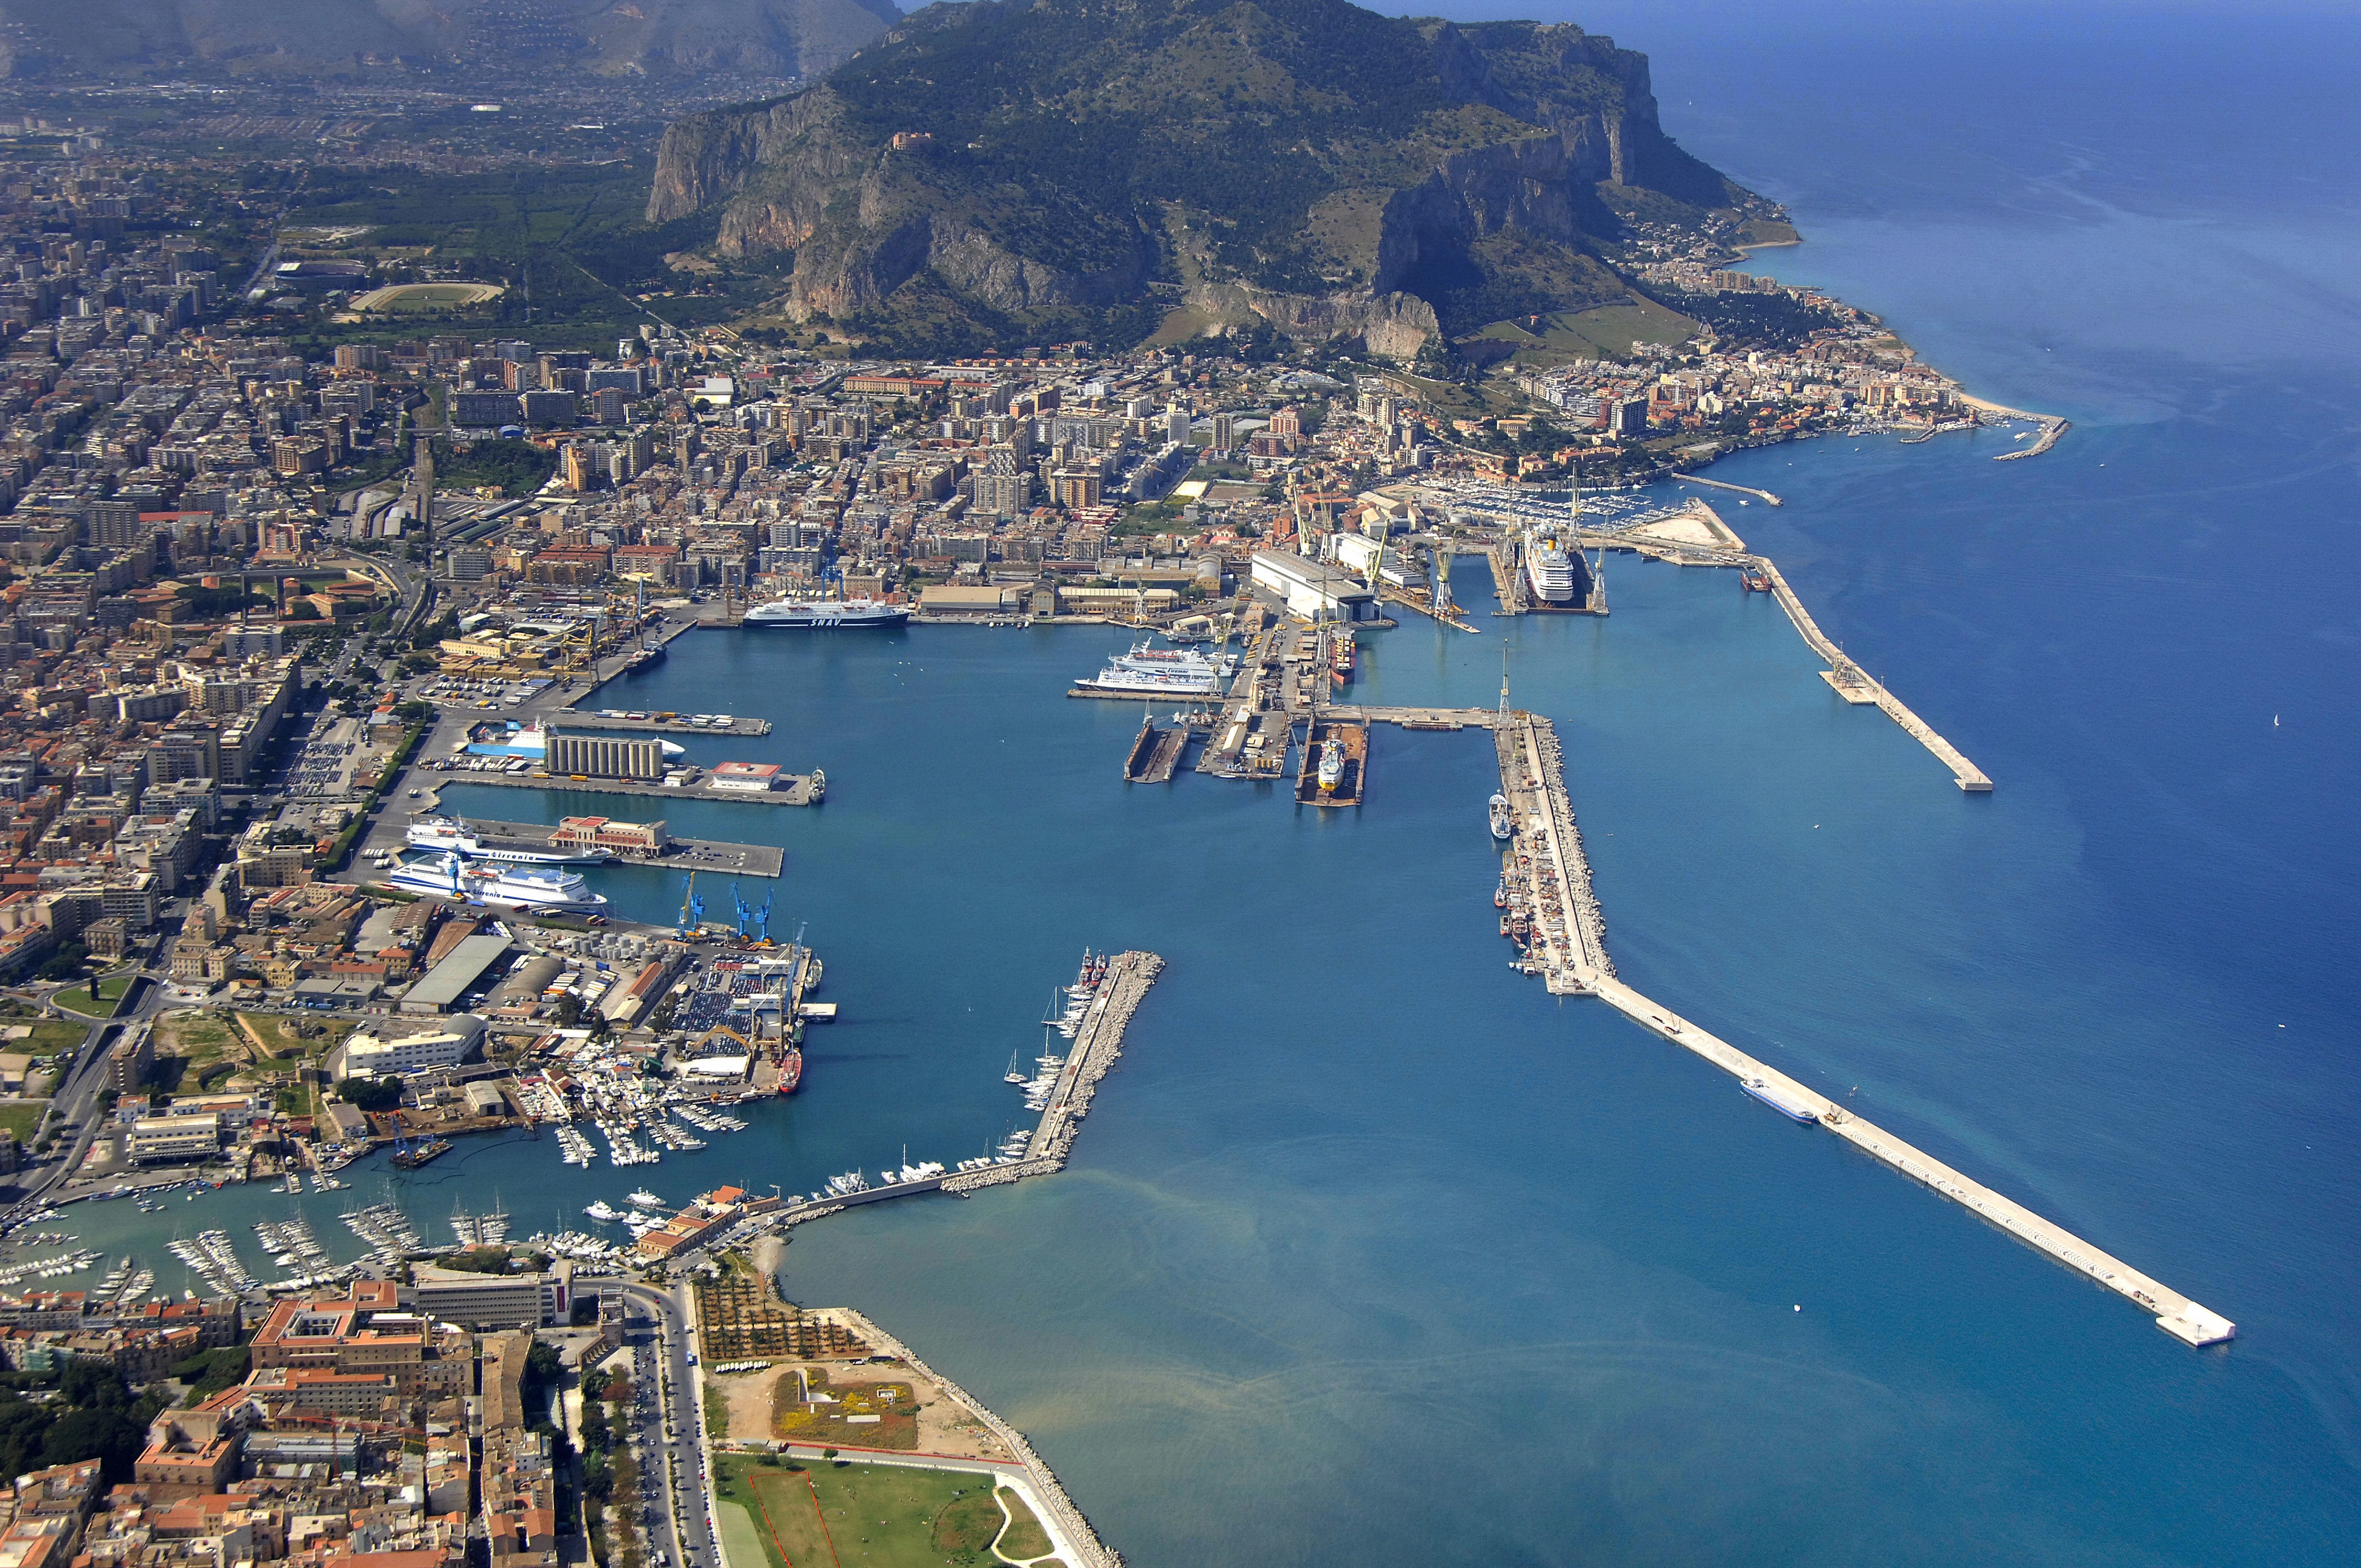 Palermo Commercial Port Harbor in Palermo, Sicily, Italy - harbor ...